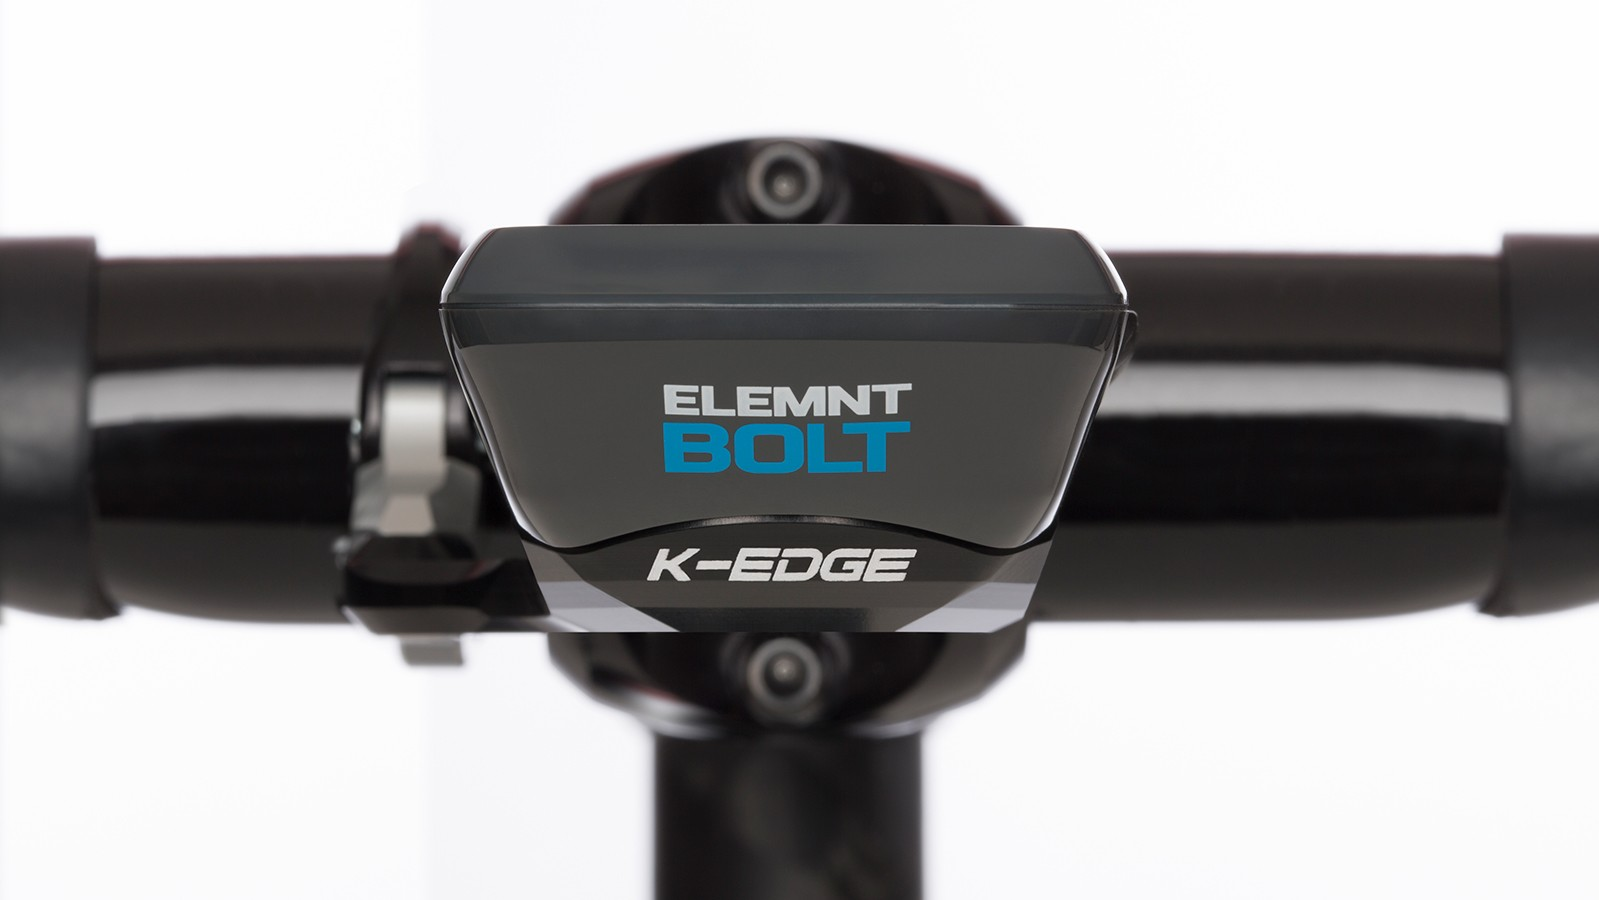 The mount integrates seamlessly with the Wahoo Elemnt Bolt